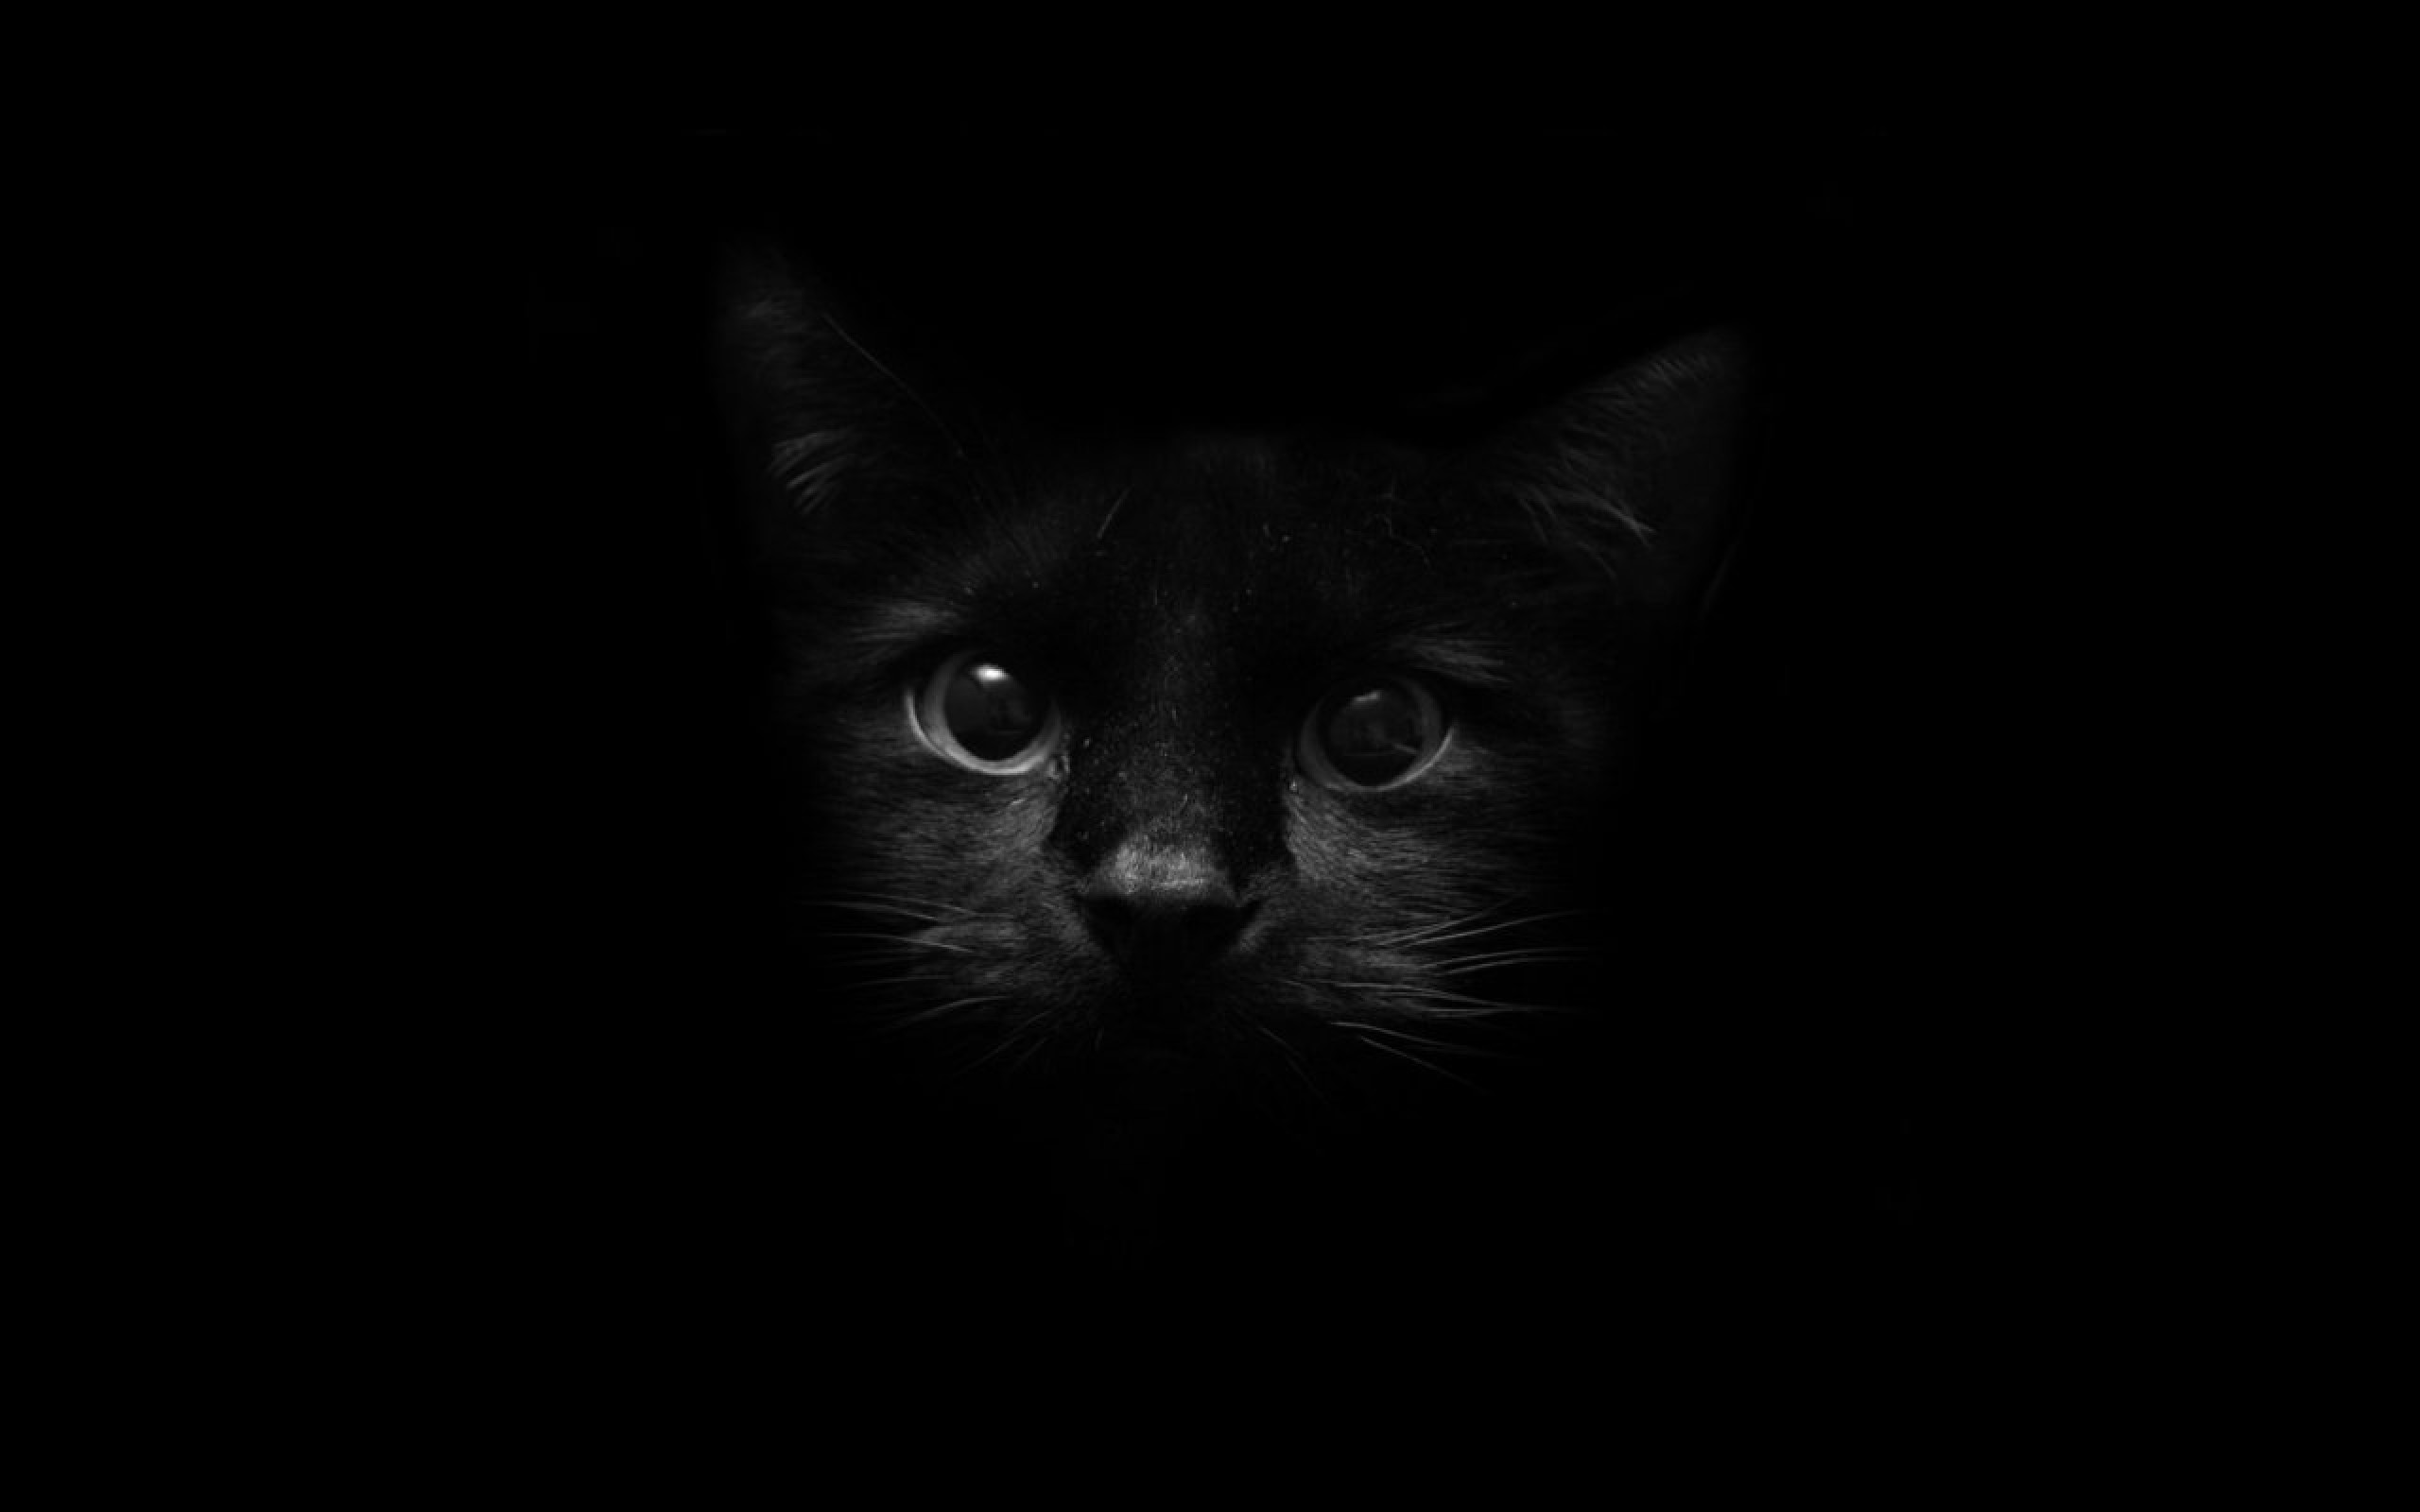 Most Inspiring Cat Wallpaper For Your Phone - black-cat-wallpaper-3  Best Photo Reference_773425 .jpg